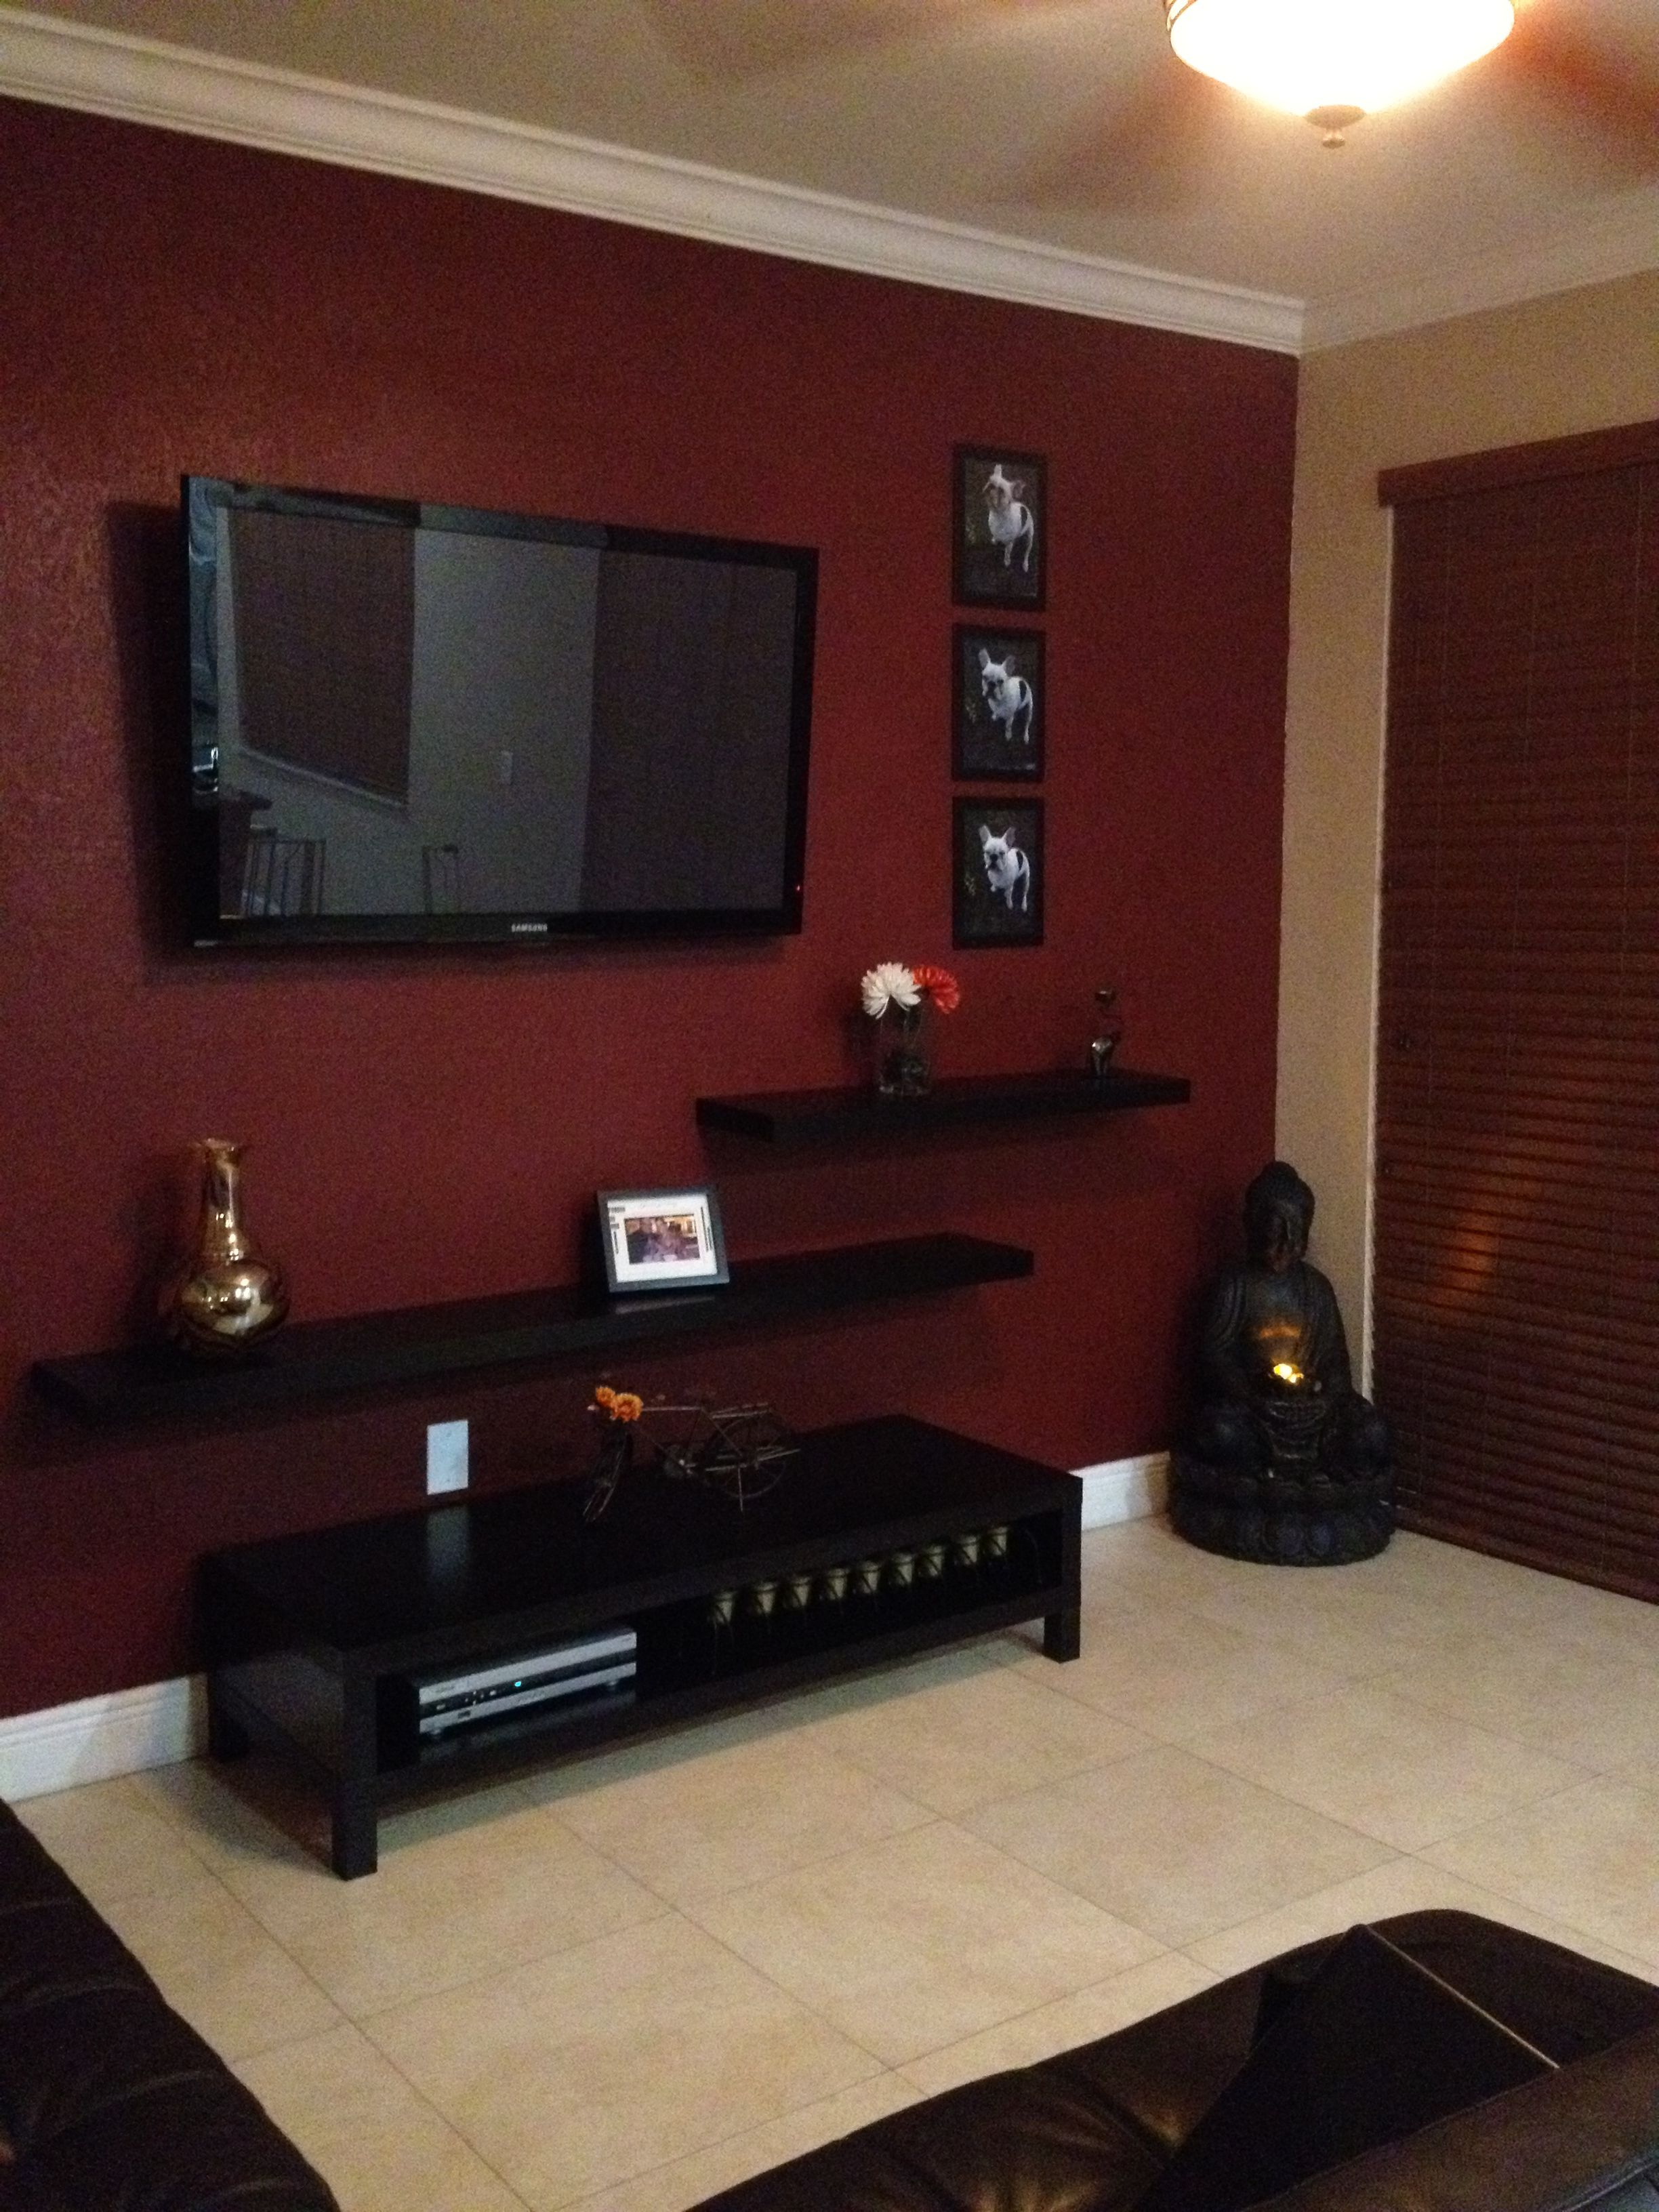 Living Room Tv Set Interior Design: Love The Wall Color And Of Coarse Buddha In The Corner